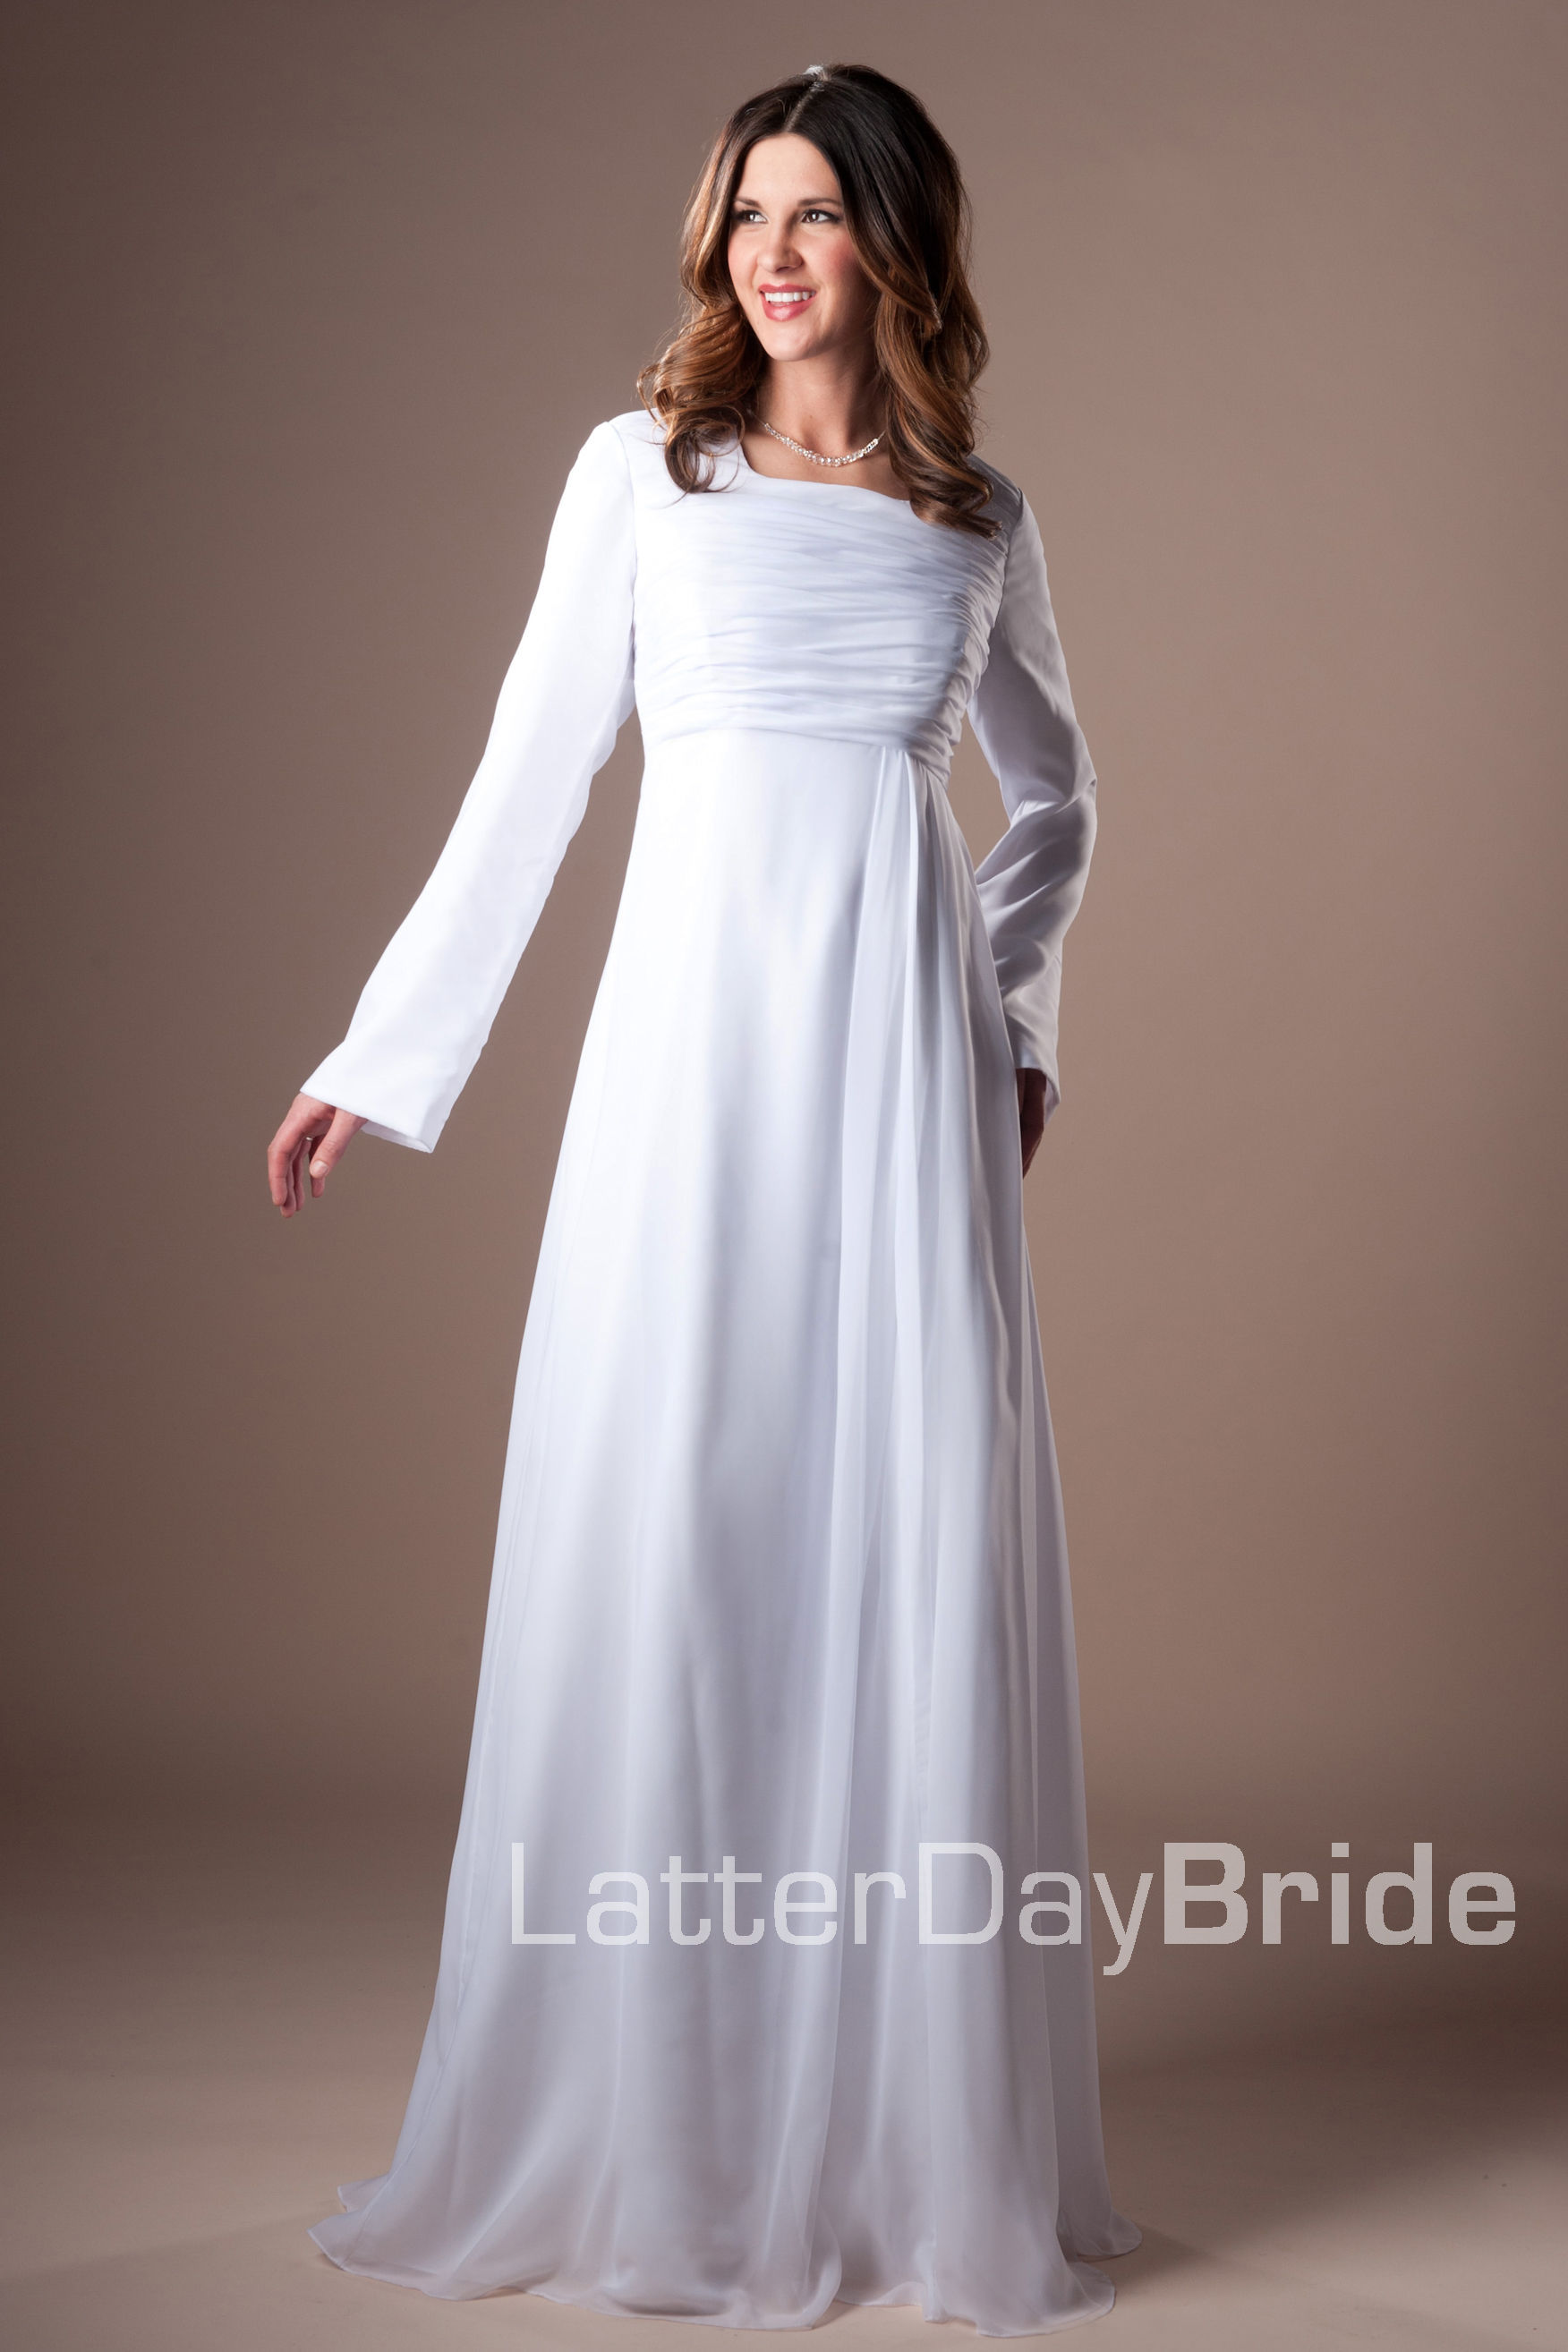 wedding dresses louisville photo - 1